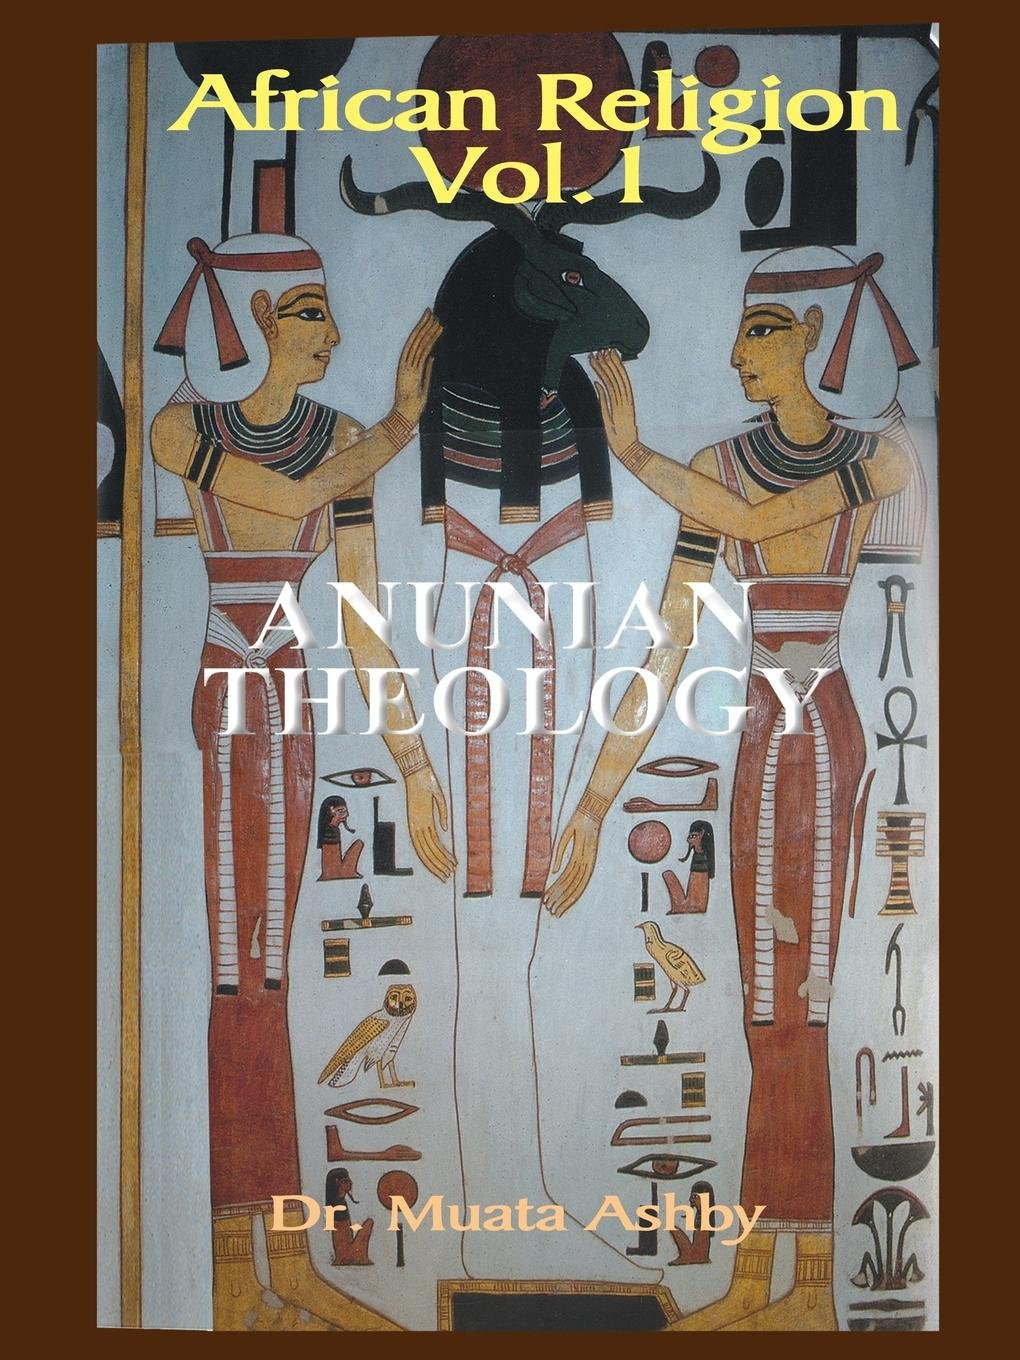 African Religion Vol. 1, Anunian Theology and the Philosophy of Ra